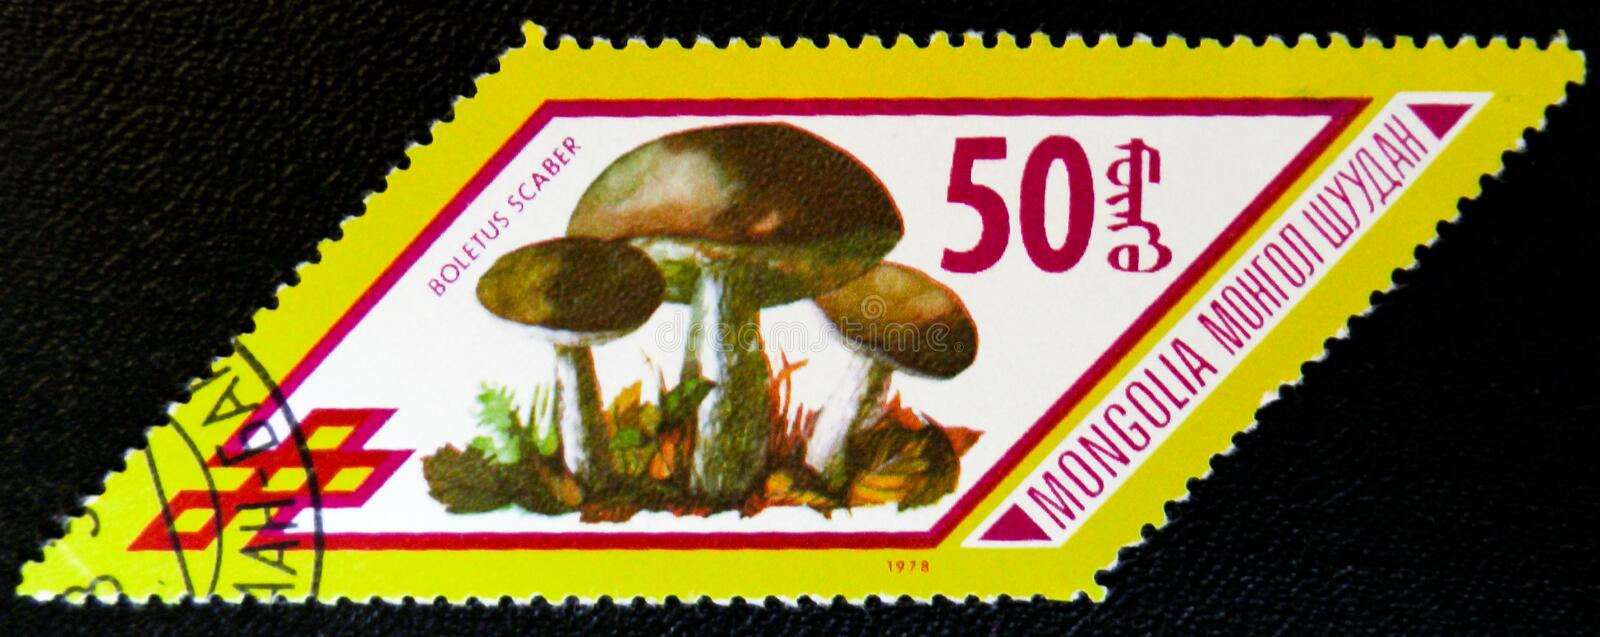 Boletus Scaber mushrooms, series, circa 1978. MOSCOW, RUSSIA - JANUARY 7, 2017: A stamp printed in Mongolia shows Boletus Scaber mushrooms, series, circa 1978 stock images